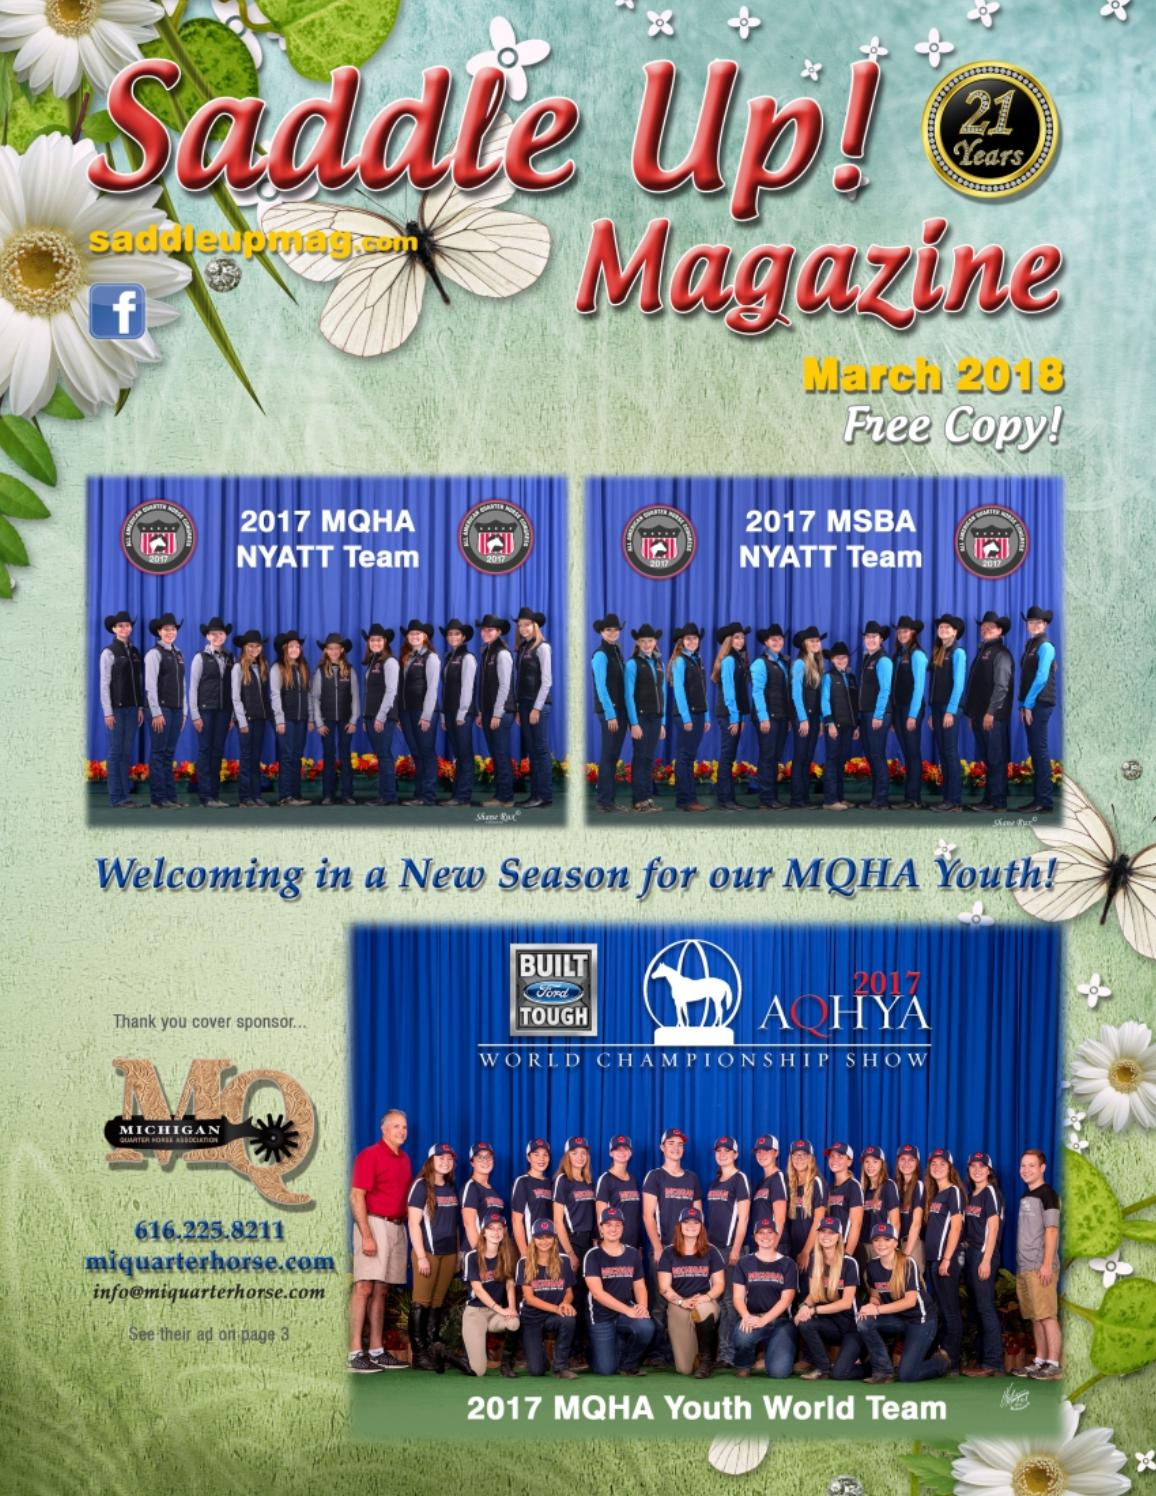 b16d037c3cf March 2018 Saddle Up! Magazine by Saddle Up! Magazine - issuu